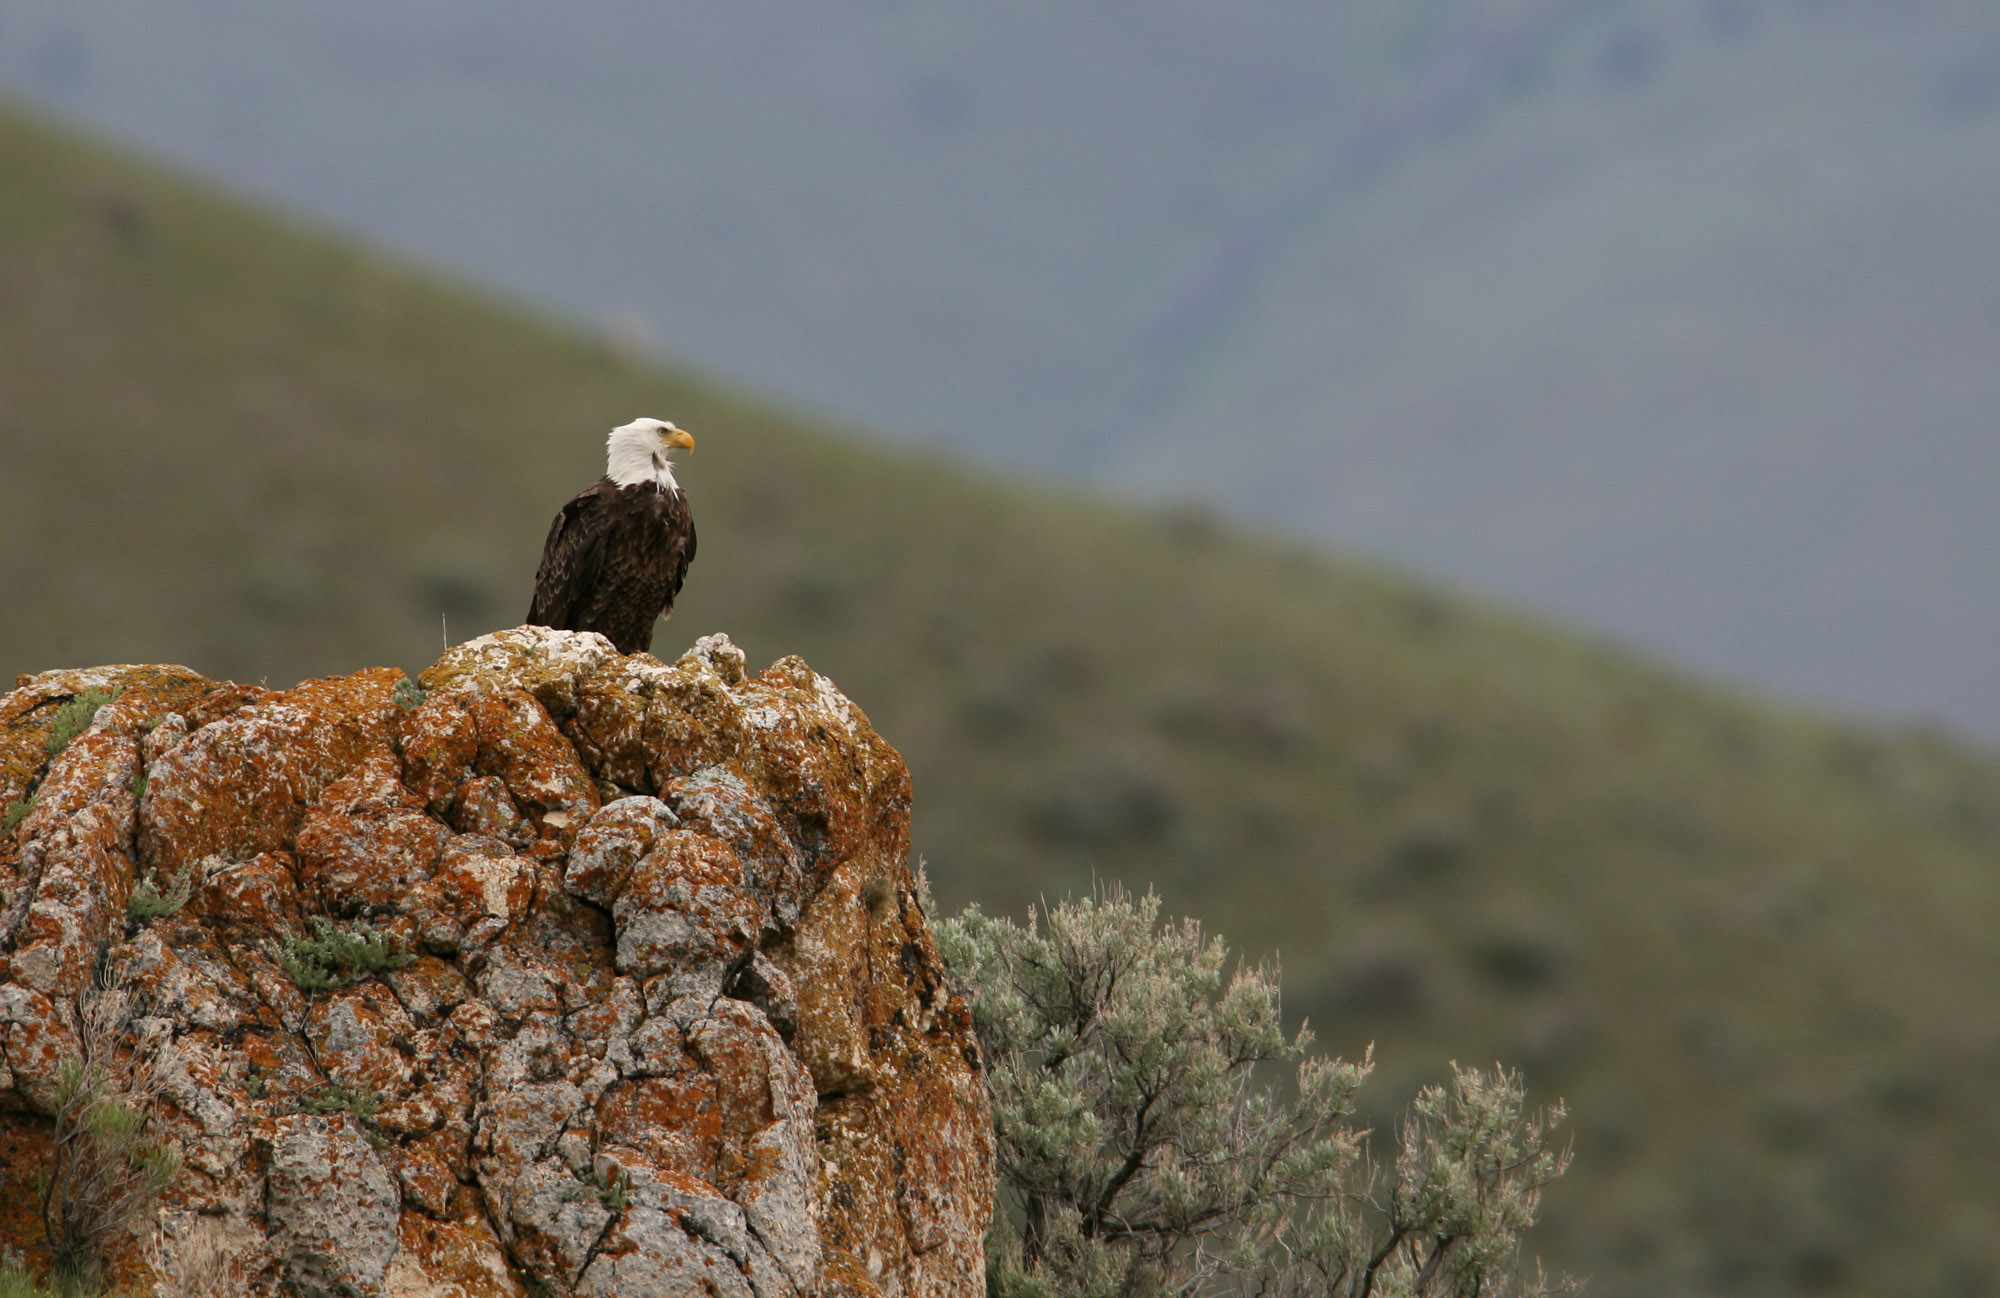 Bald Eagle in Yellowstone National Park. Credit Jim Peaco.